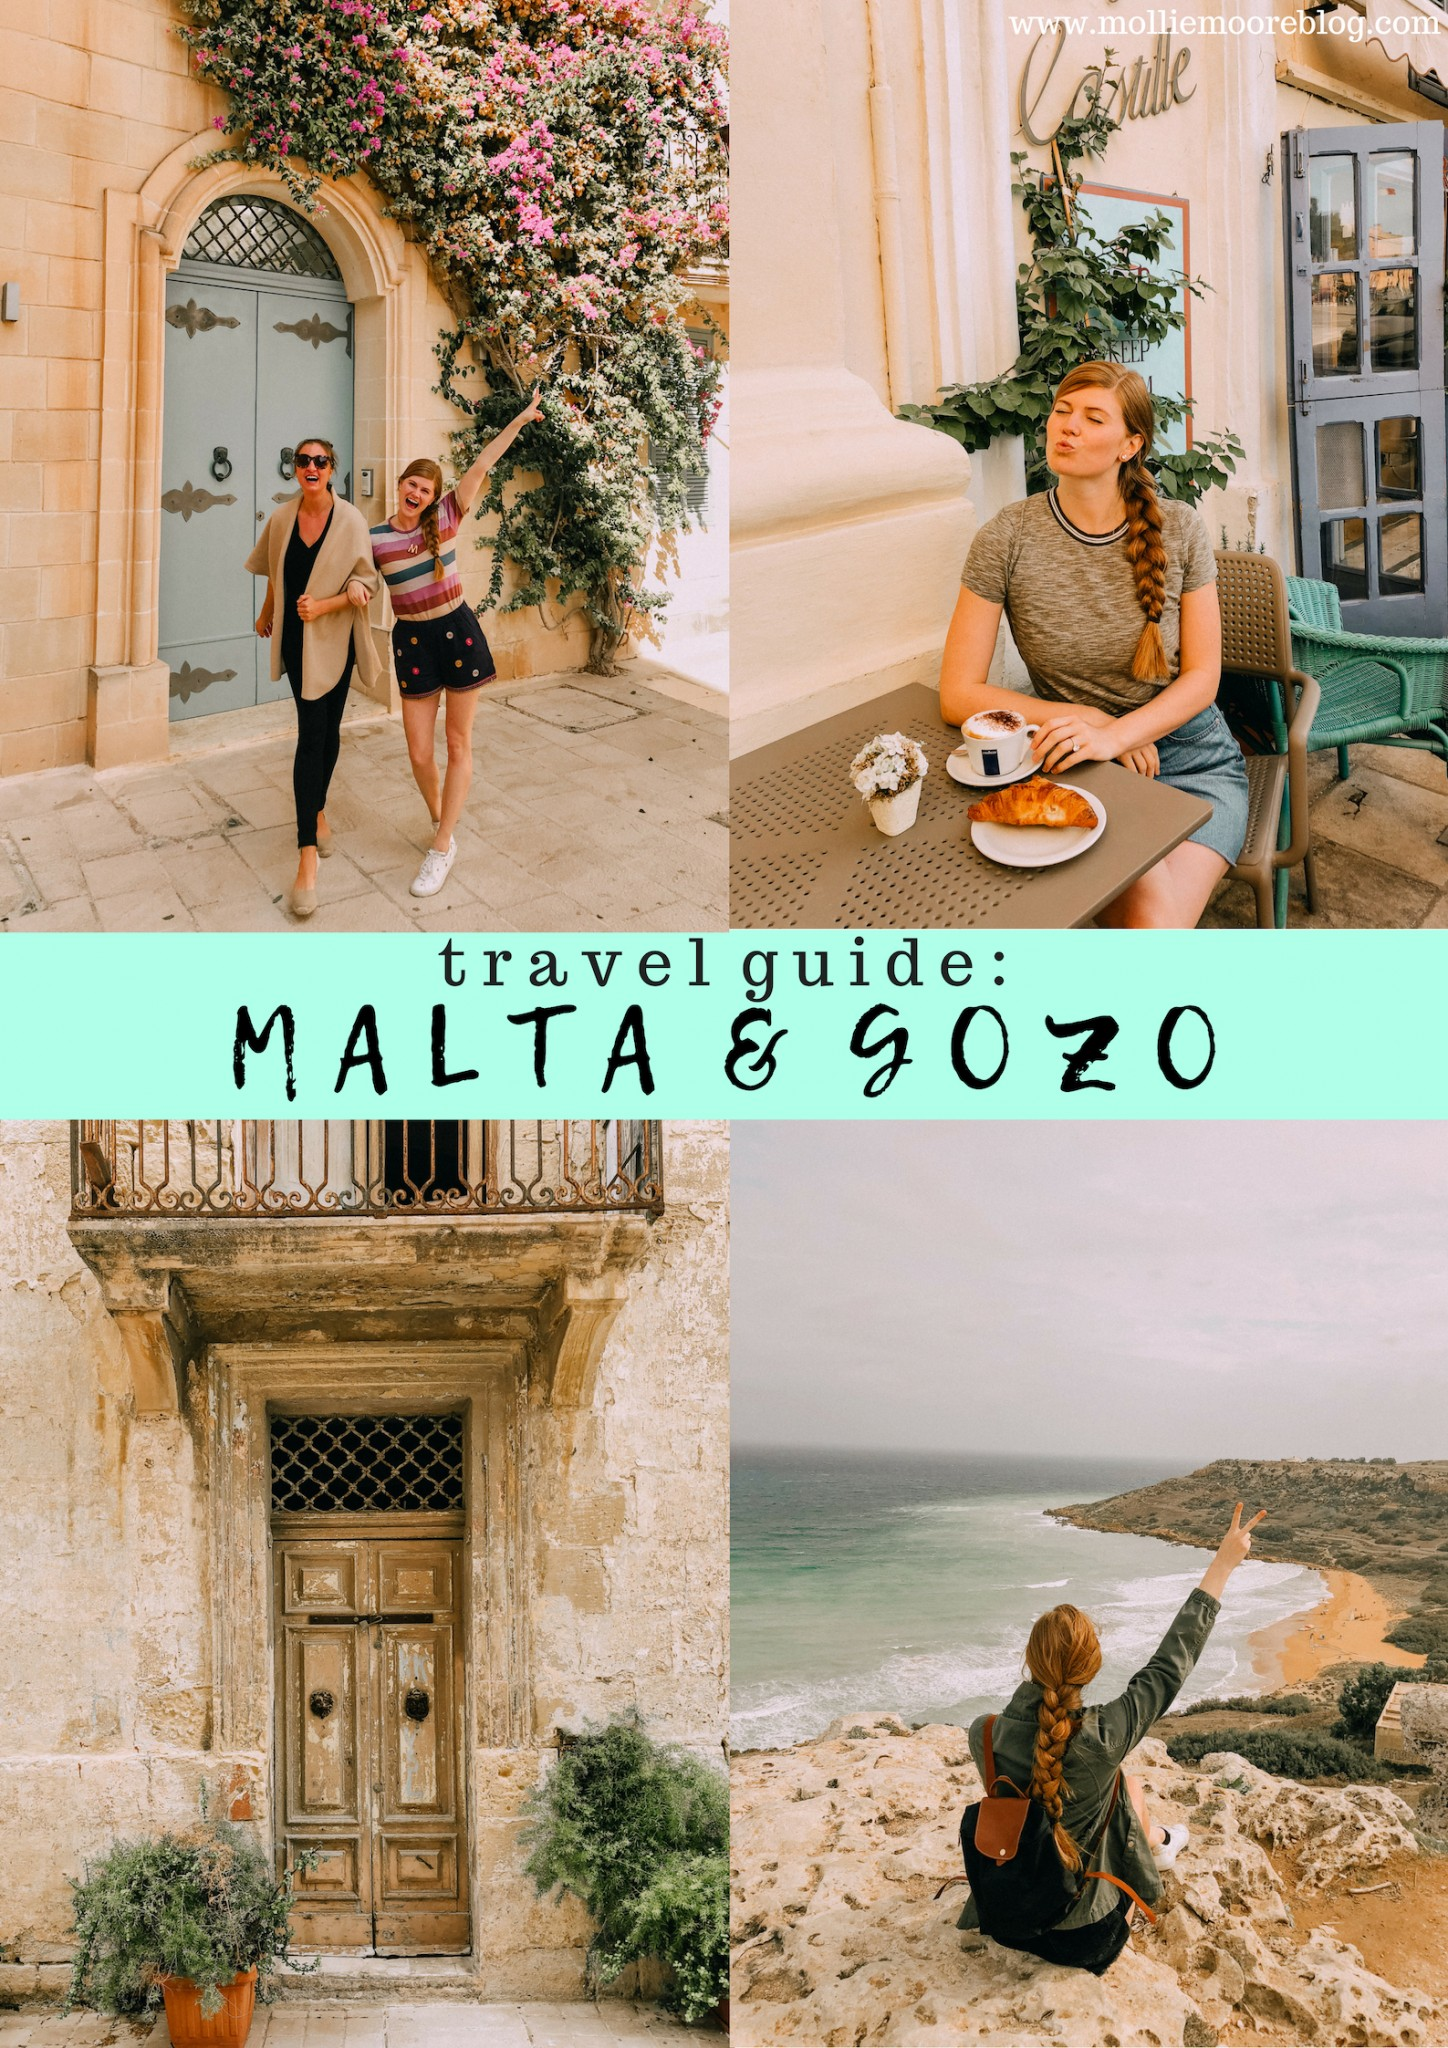 Lifestyle blogger Mollie Moore shares her Malta Travel Guide